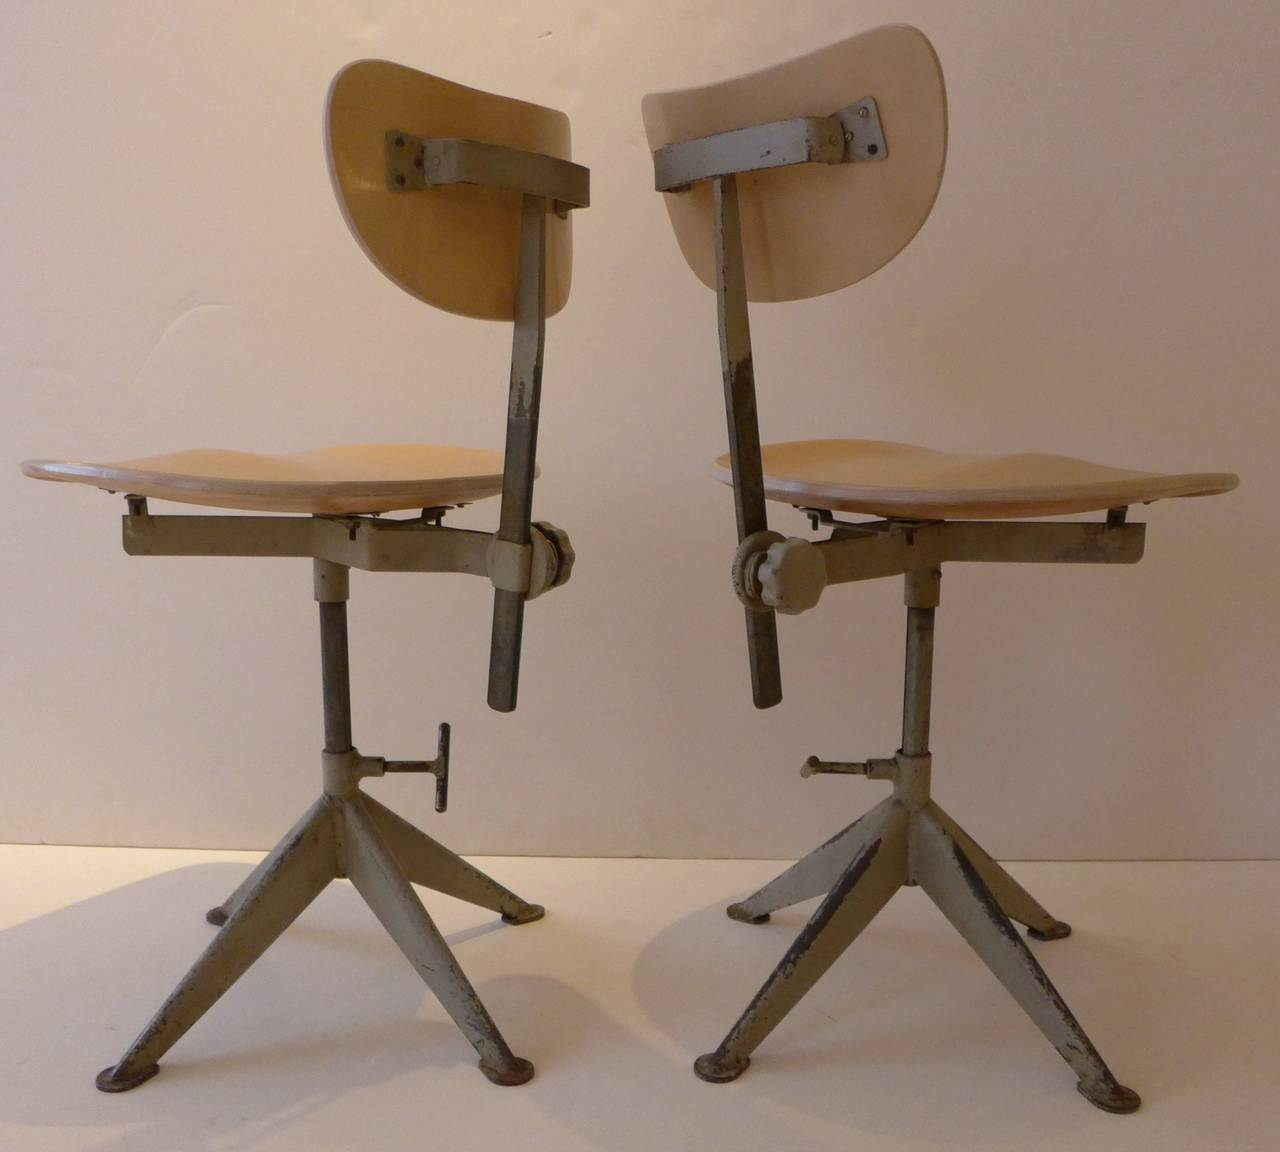 Two work chairs of molded birch plywood and painted steel by the Swedish metalworking firm of Odelberg Olsen, produced circa 1948, for distribution by Knoll in the U.S. market. The chair, which references Prouve, is shown in the 1948 Knoll catalog